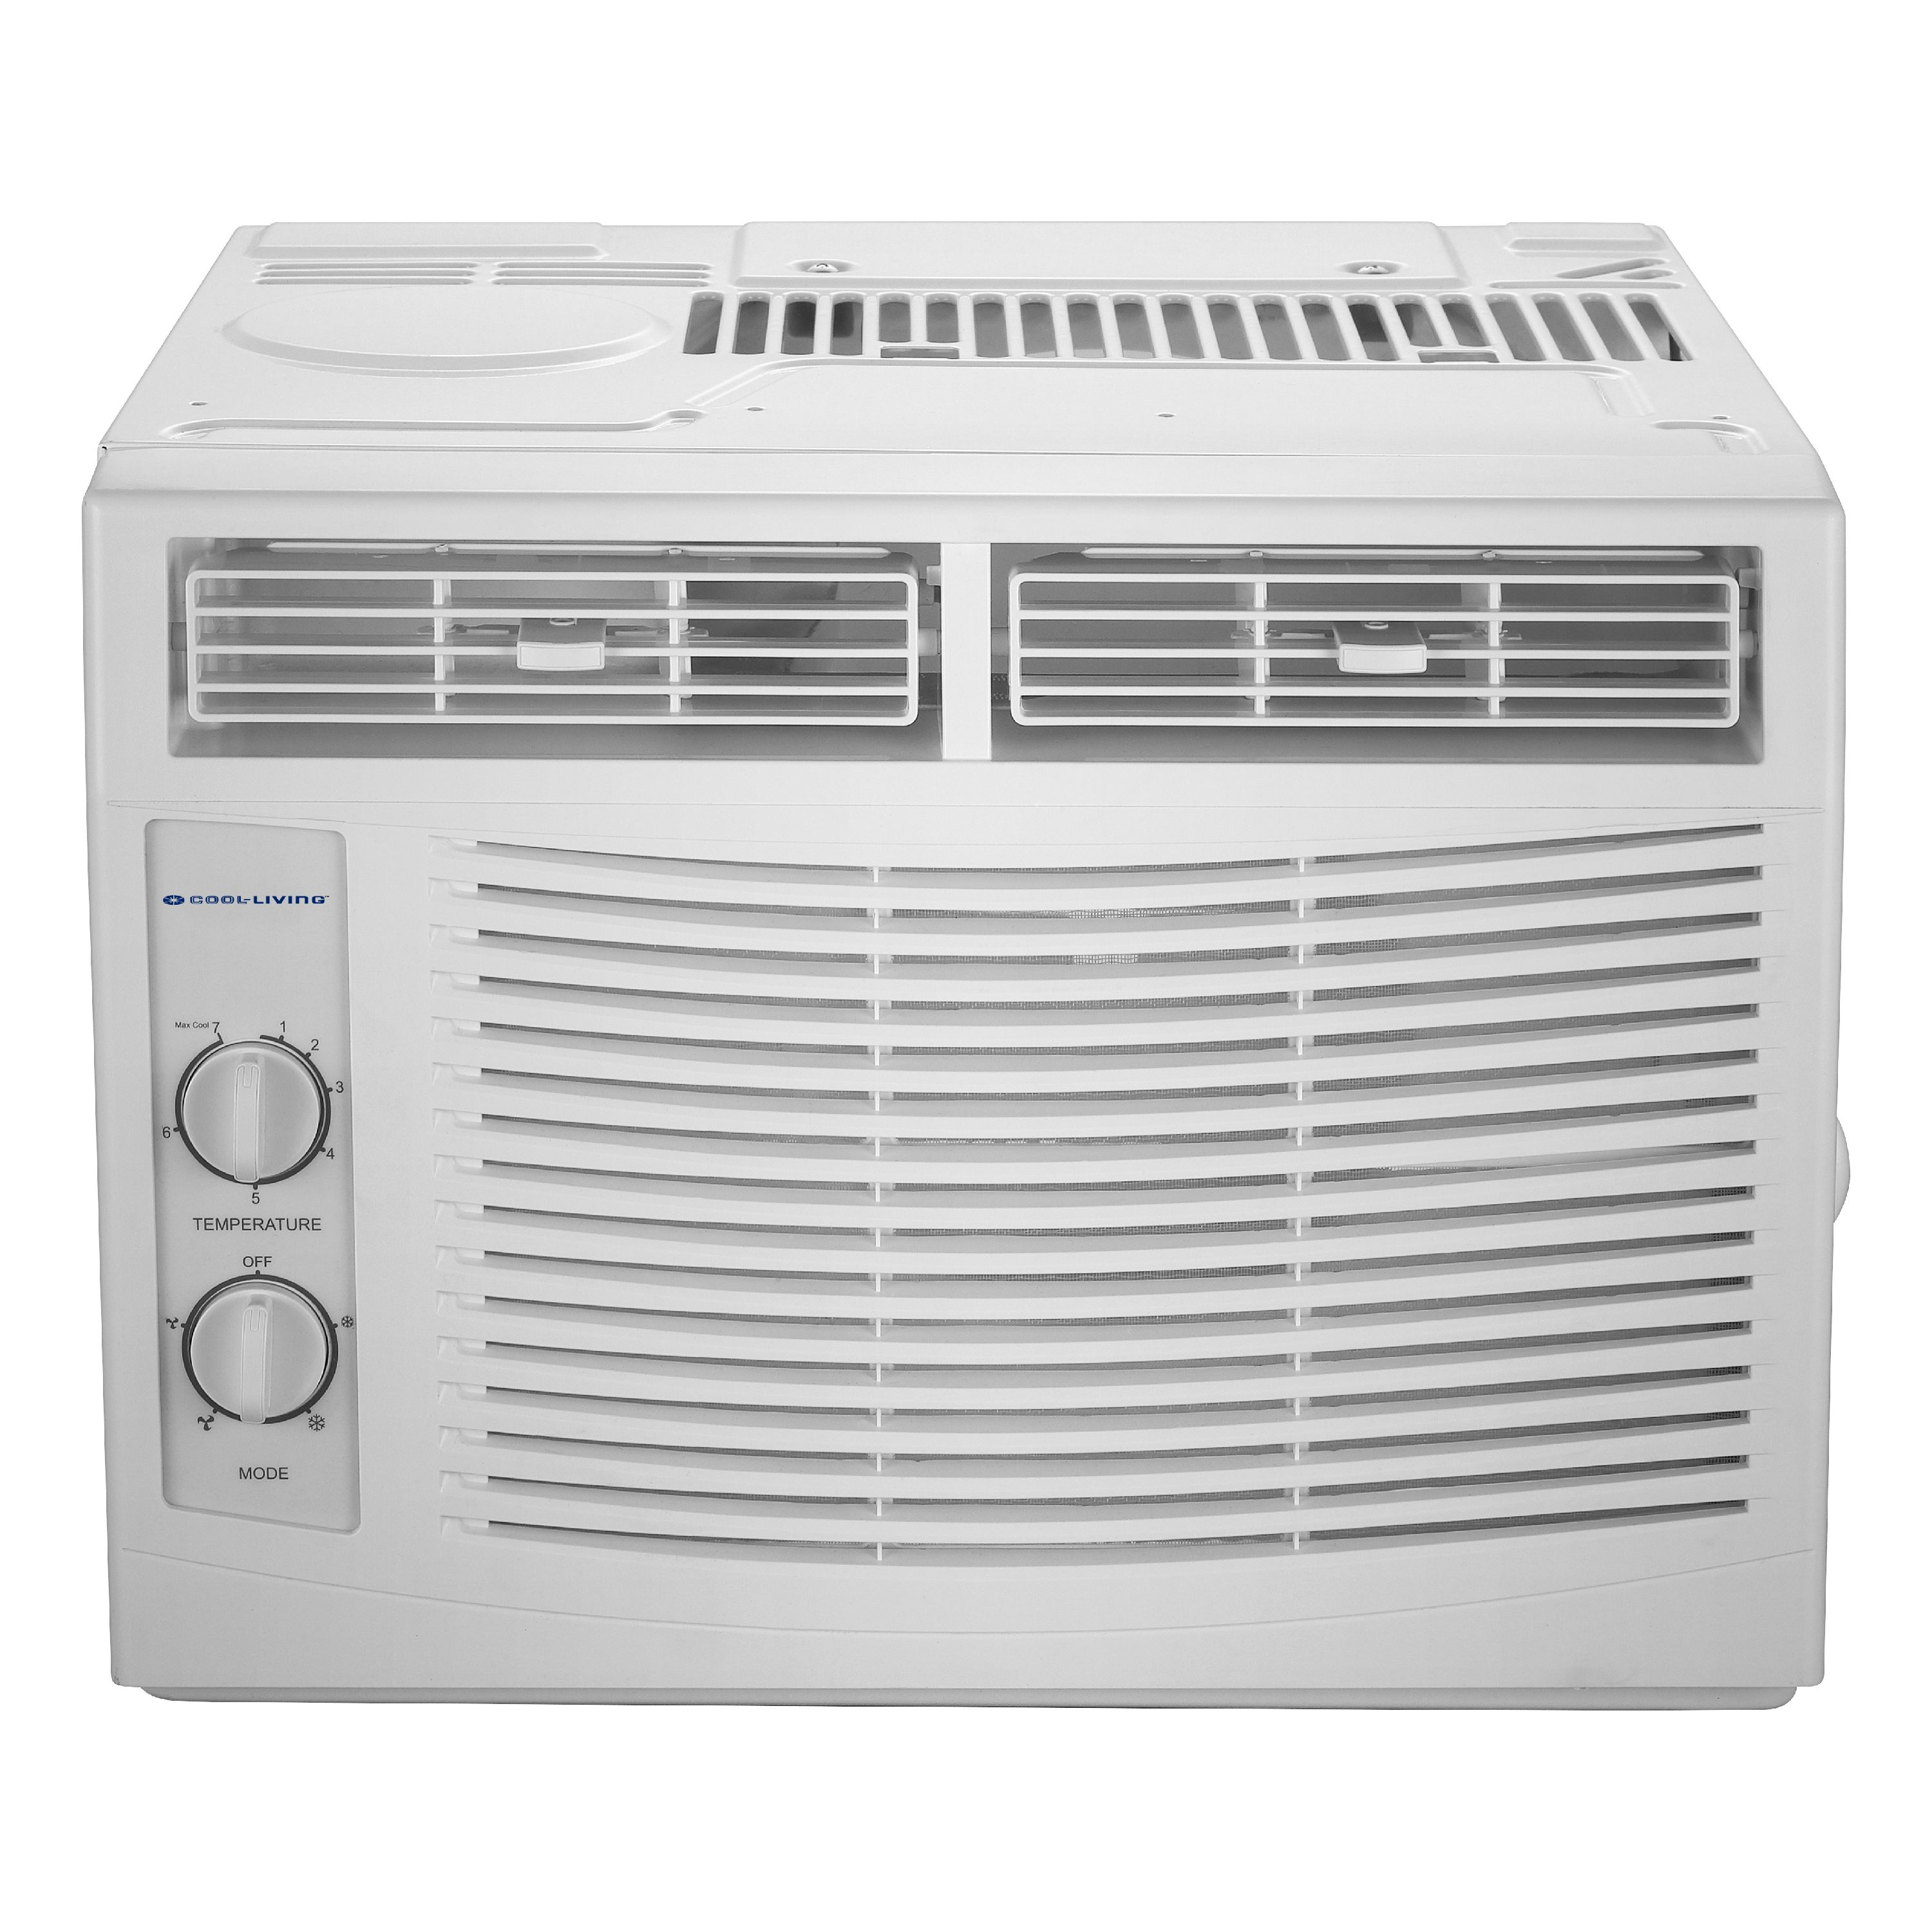 Cool-Living 5,000 BTU Window Air Conditioner with Installation Kit